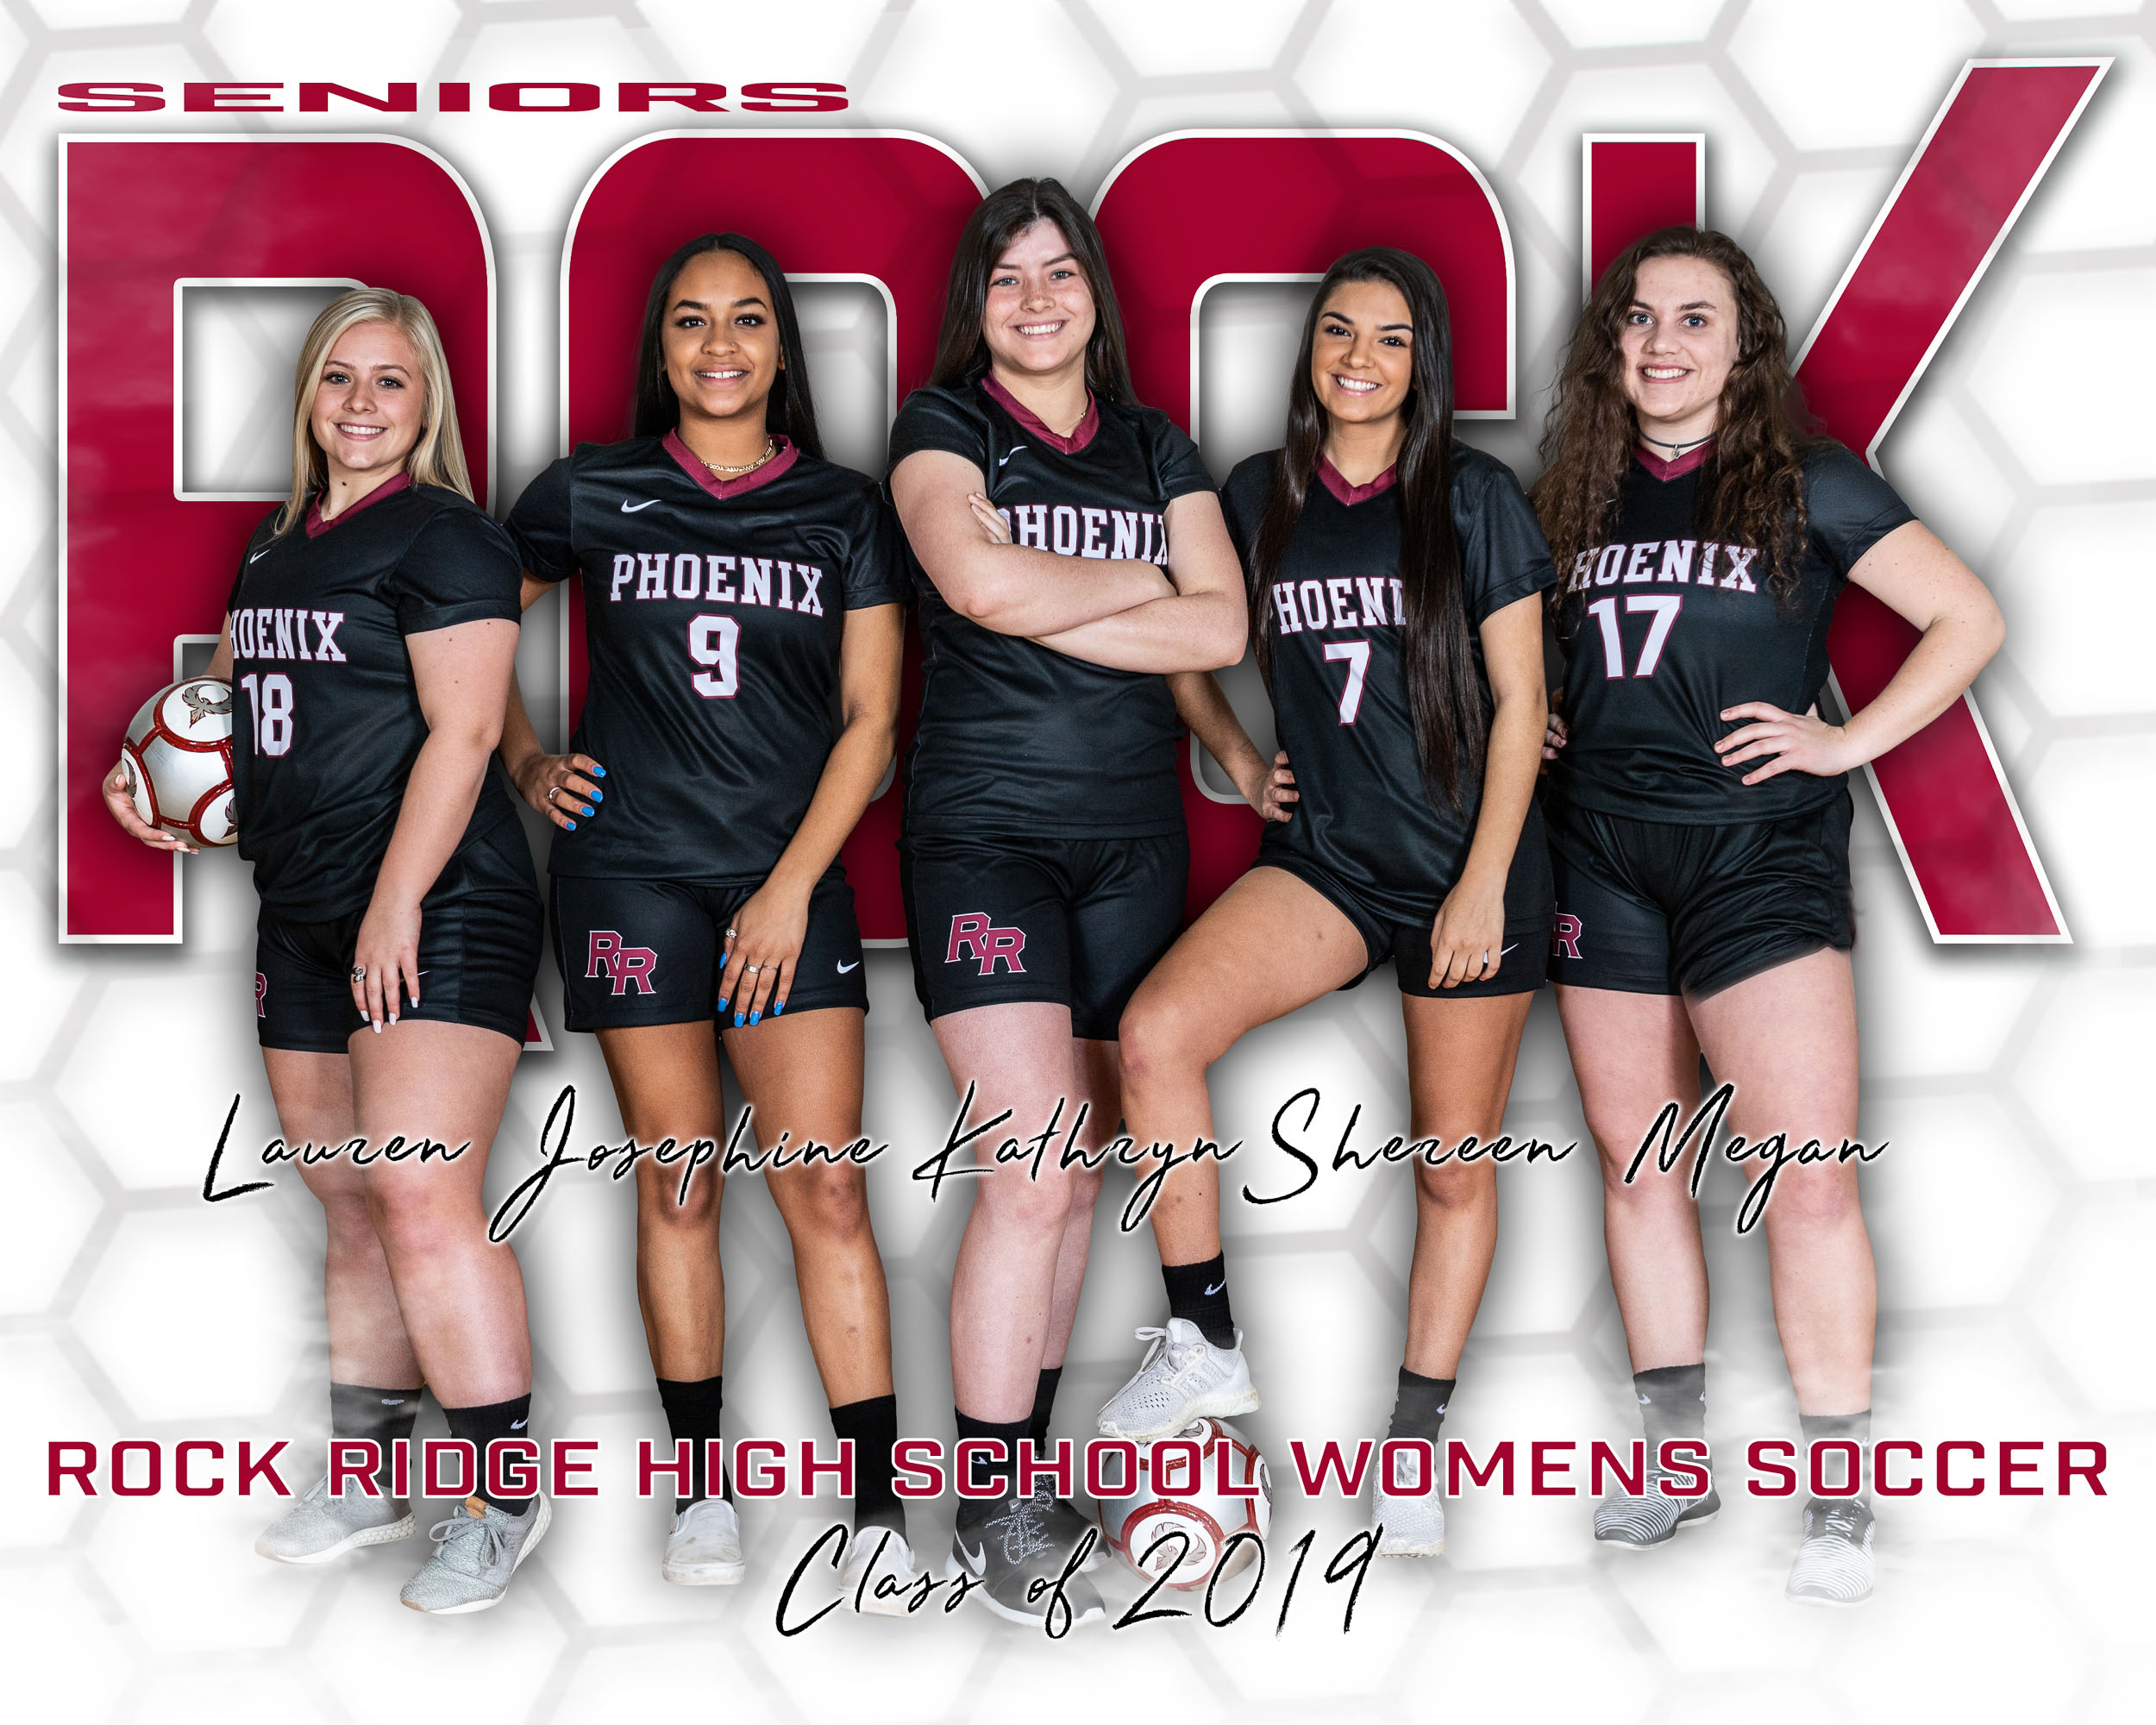 sbanners_2019_RR_GSOC_Senior_Photo_8x10-3-2